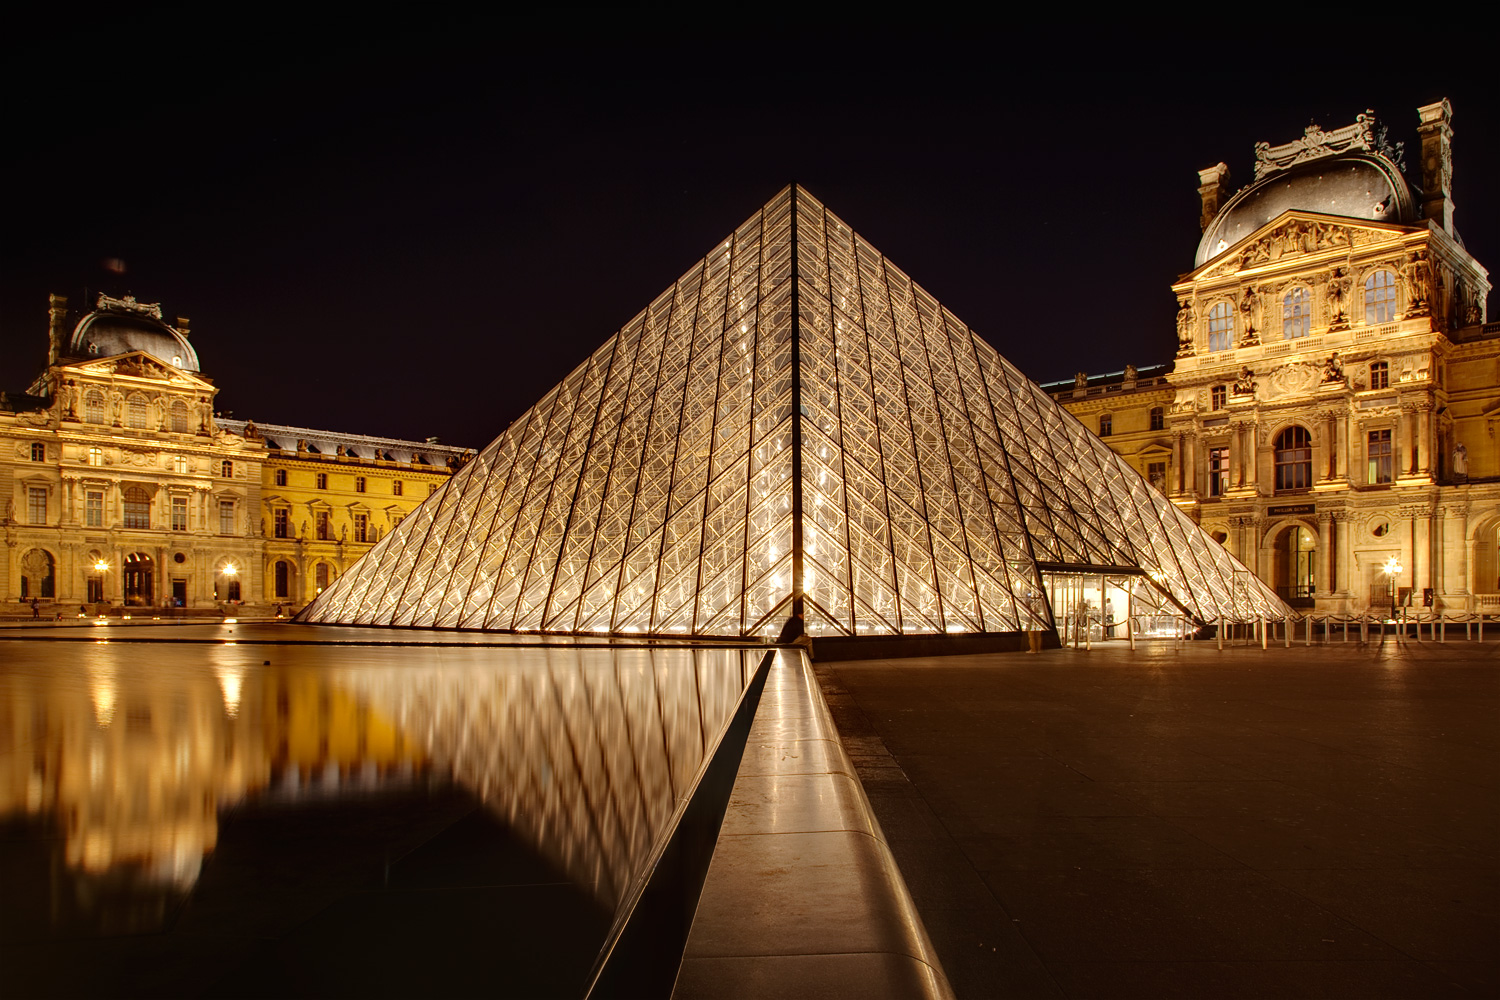 61/LOUVRE/flickr_-_cc_-_manuel_paternity_-_no_modification-_no_commercial_use.jpg